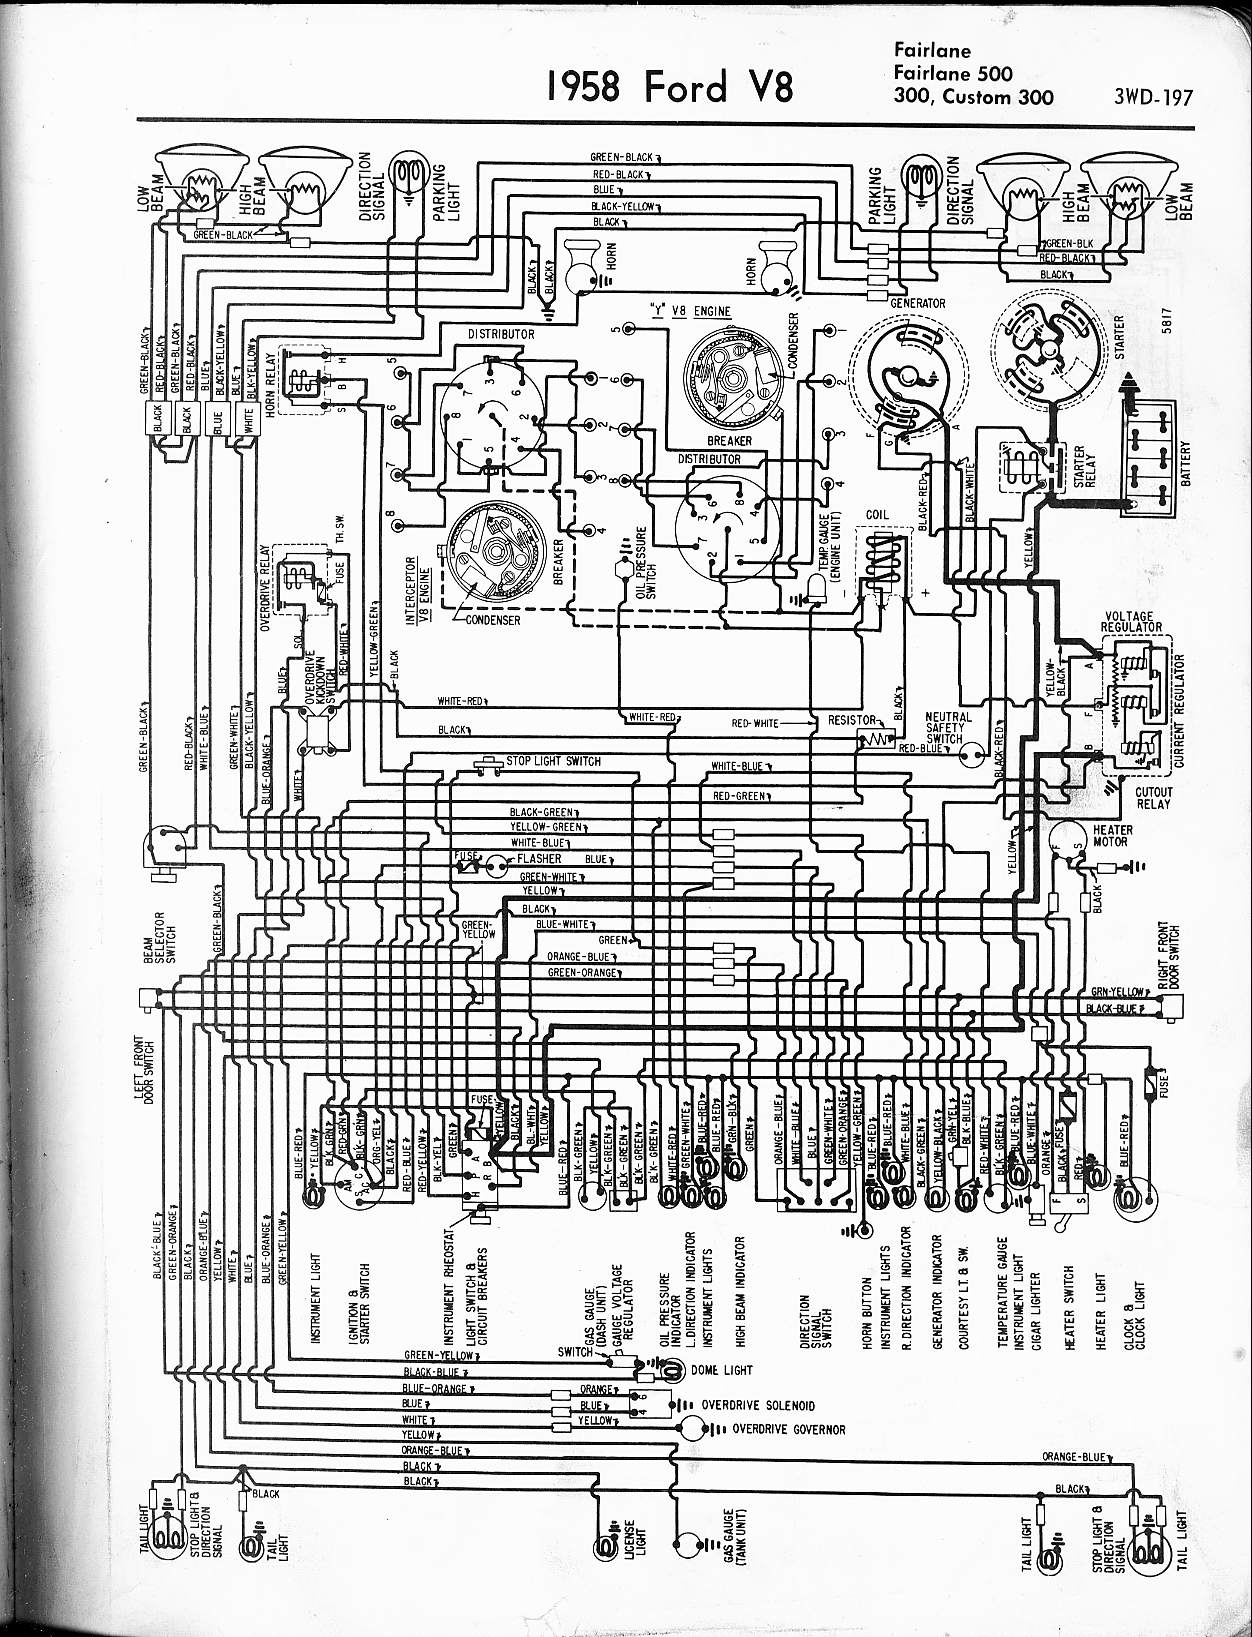 hight resolution of 1958 ford f100 wiring diagram wiring diagrams 1958 ford f100 wiring diagram